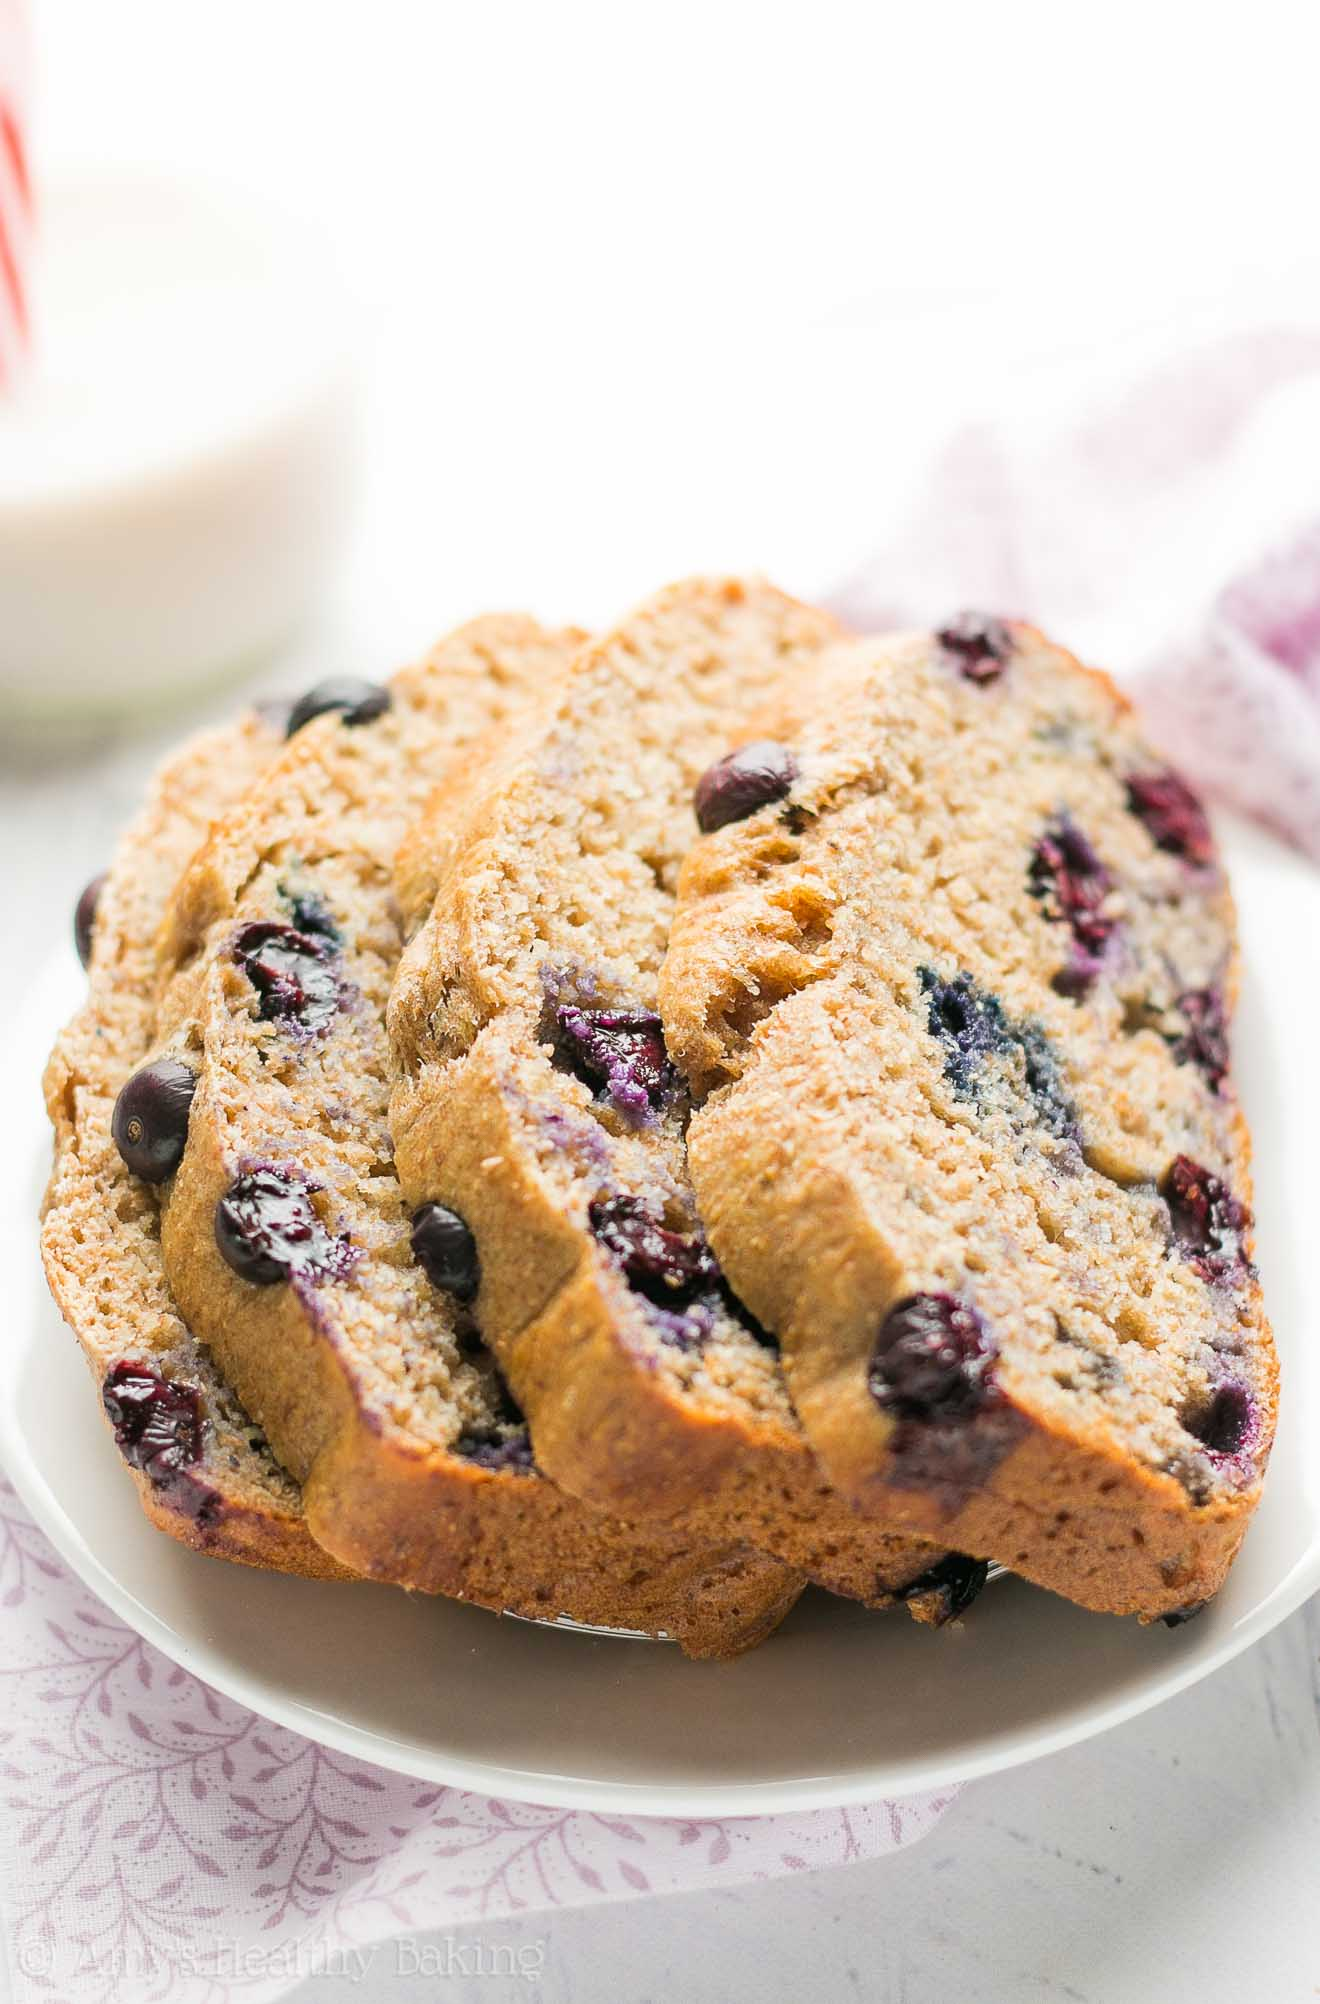 Skinny Blueberry Buttermilk Banana Bread - so easy, 110 calories & 4g+ of protein! A great healthy breakfast or snack!